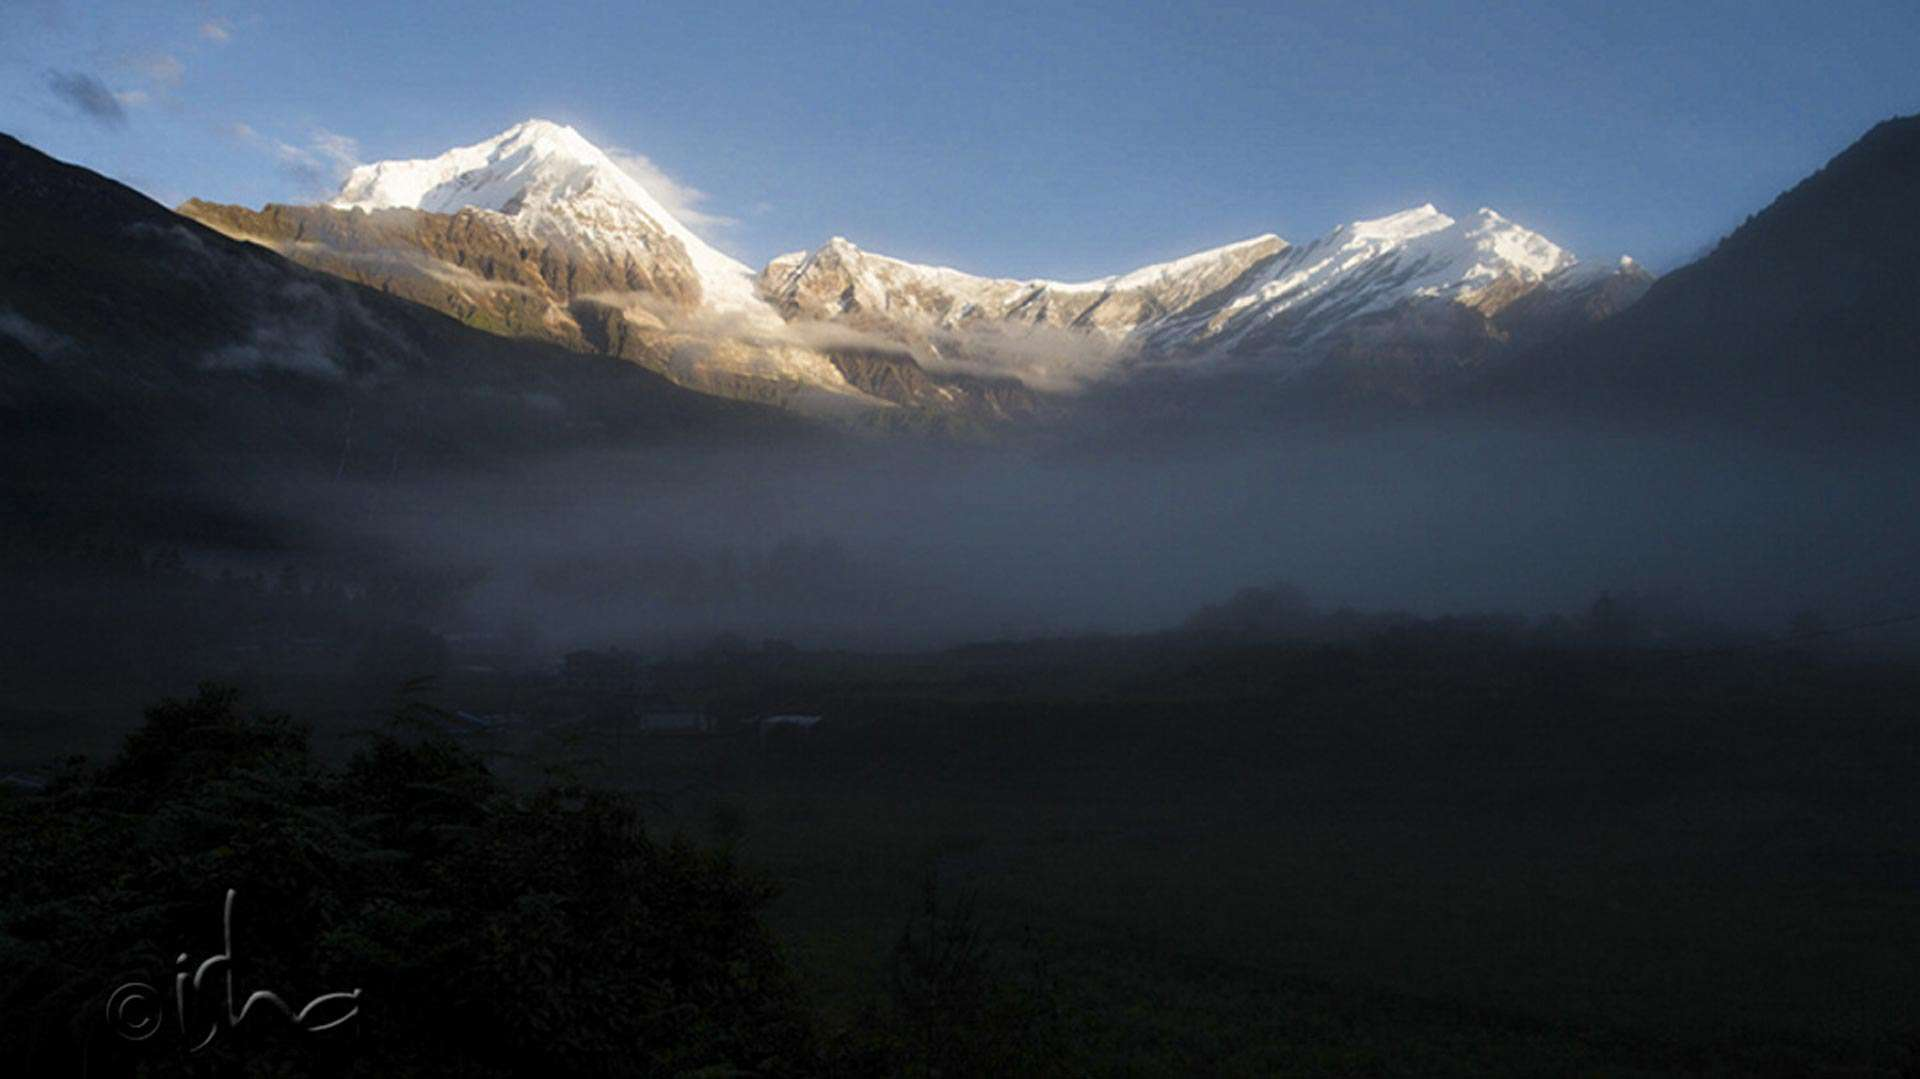 Dhaulagiri (7th highest mountain in the world) and Tuluche mountain peaks